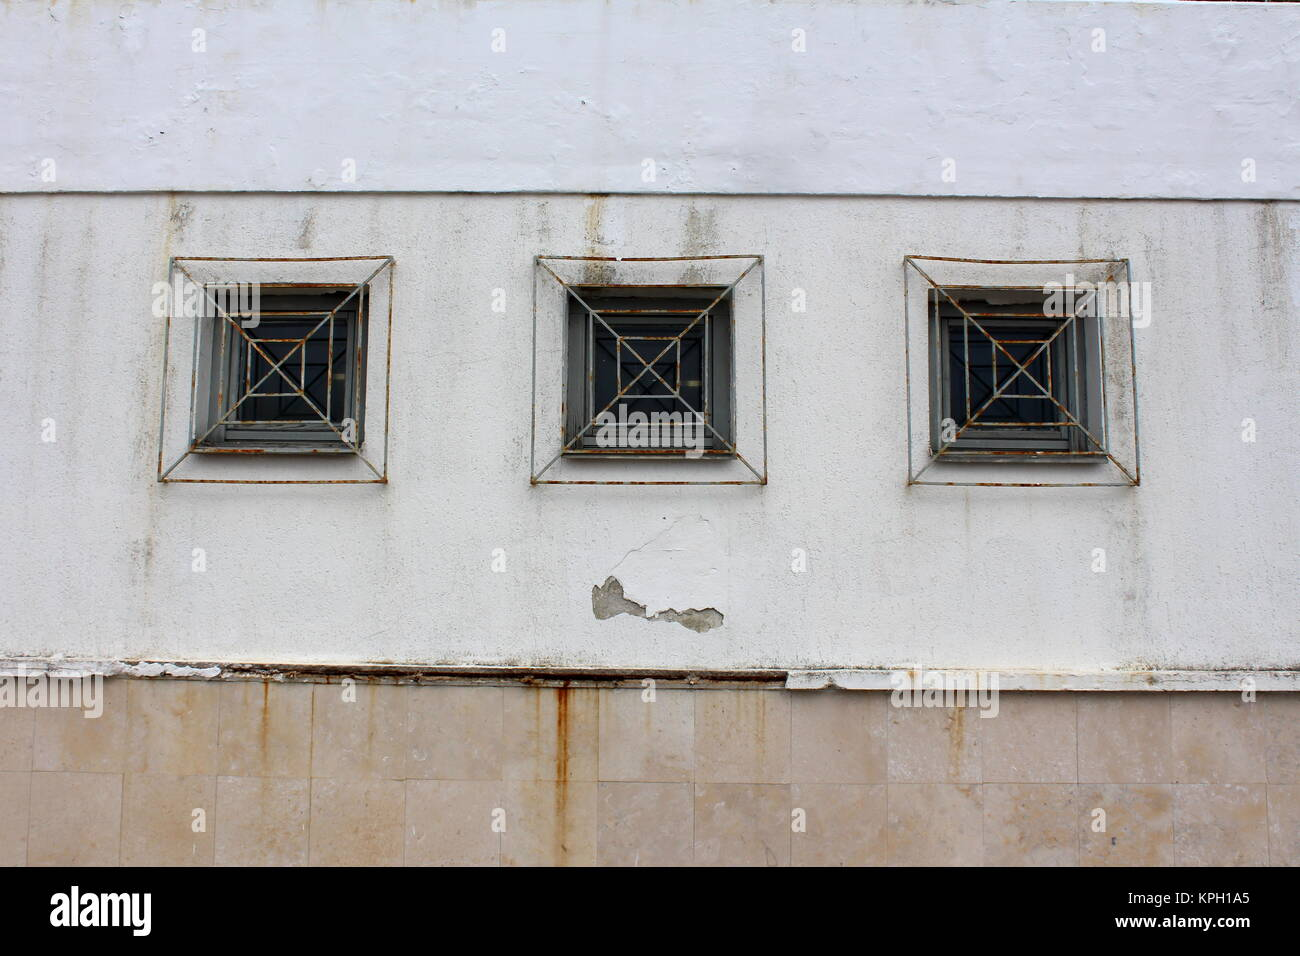 three wooden frame rectangle glass windows with partially rusted metal bars mounted on dilapidated wall outside - Metal Frame Windows